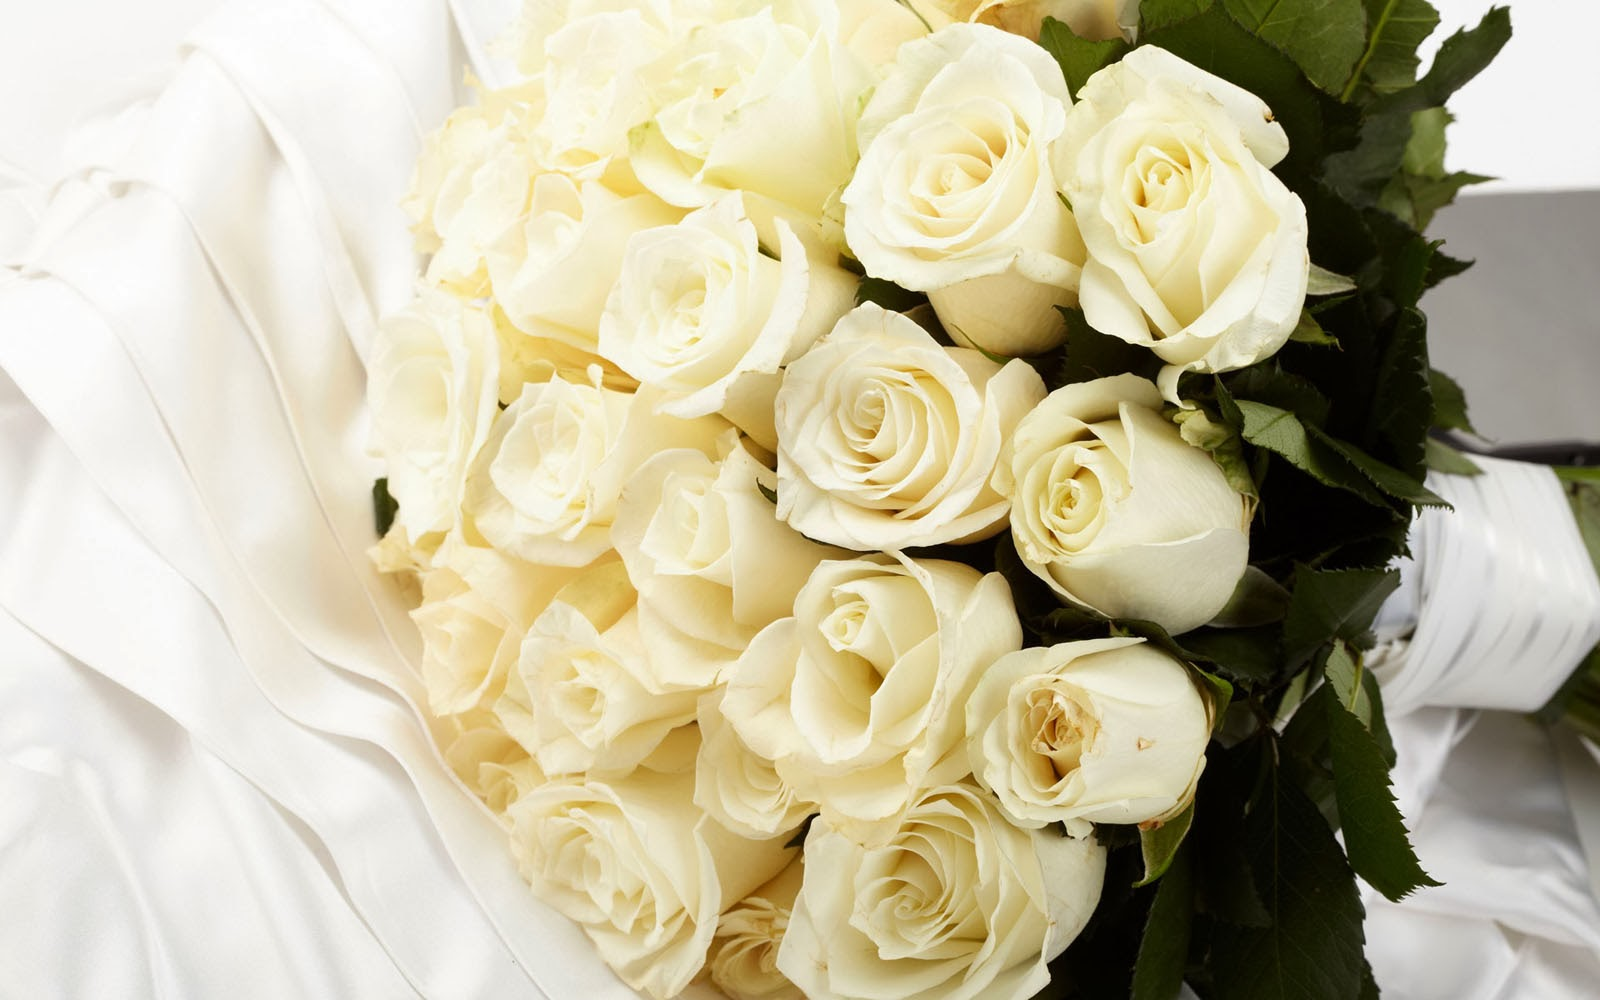 tag white rose bouquet - photo #7